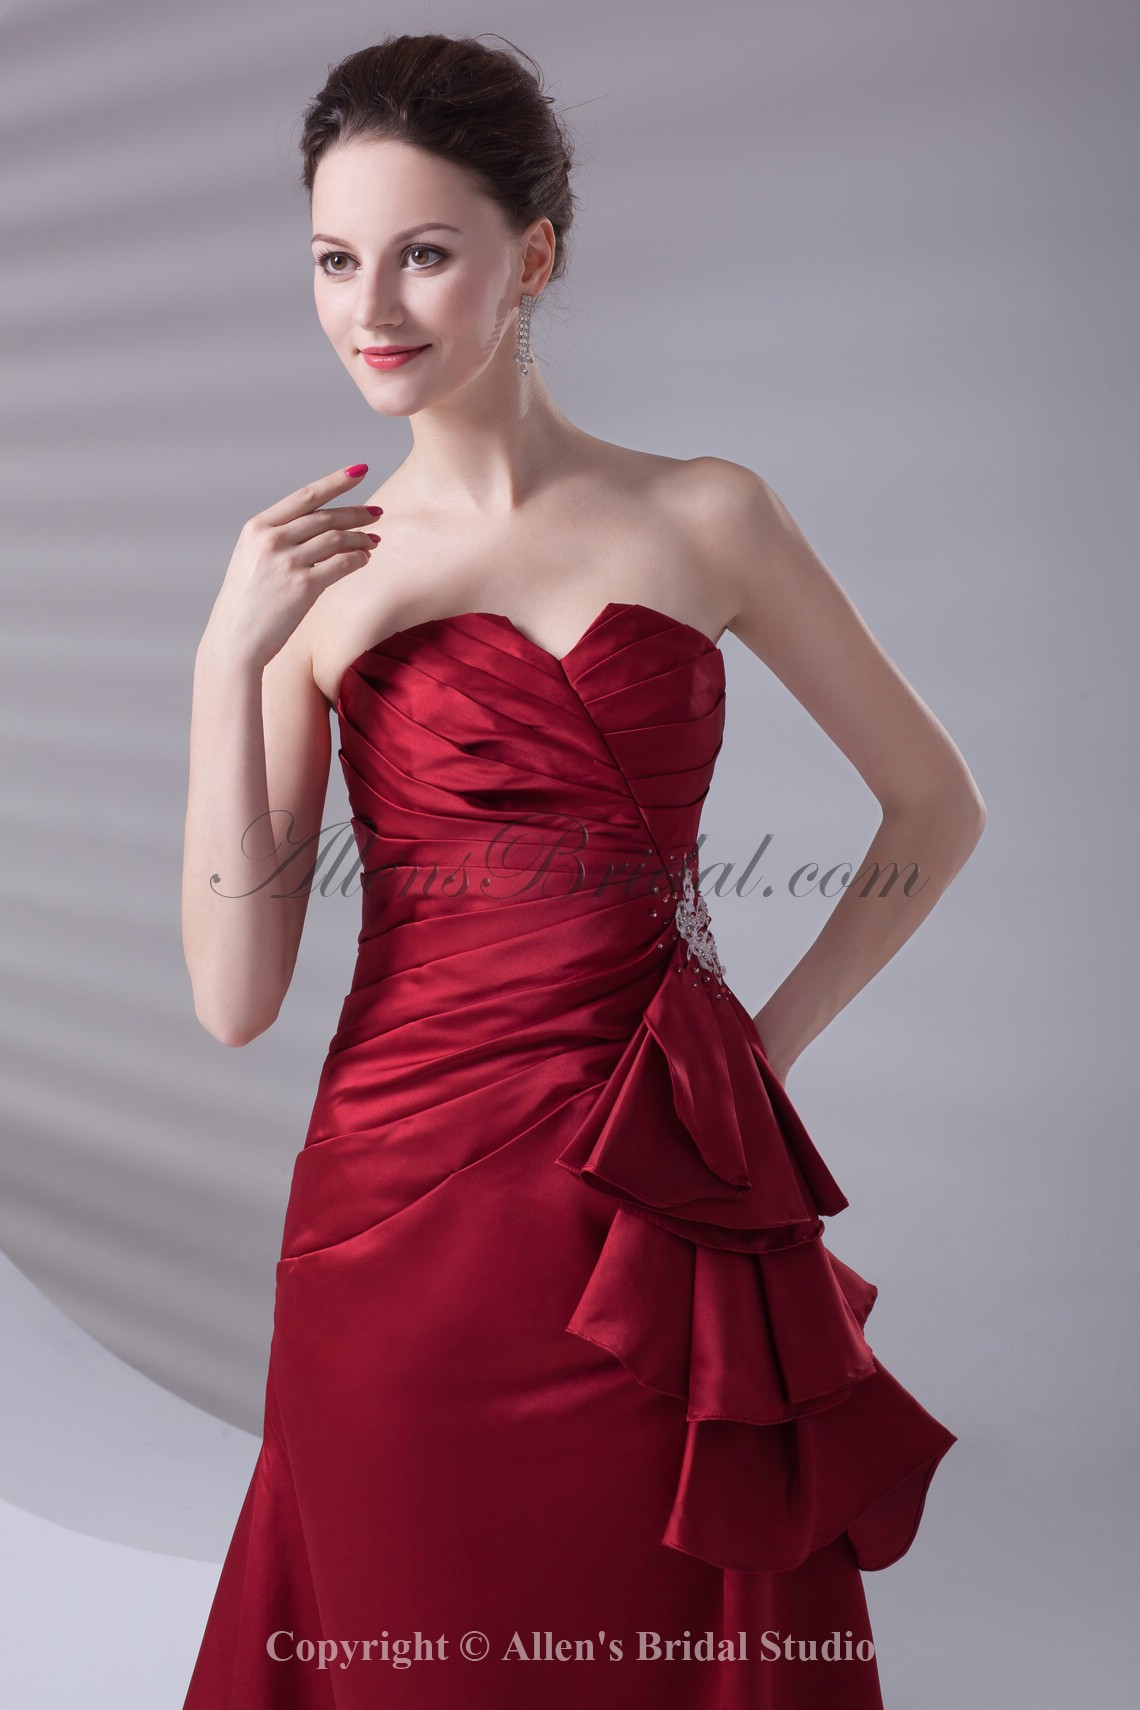 /401-3205/satin-strapless-a-line-floor-length-ruched-prom-dress.jpg